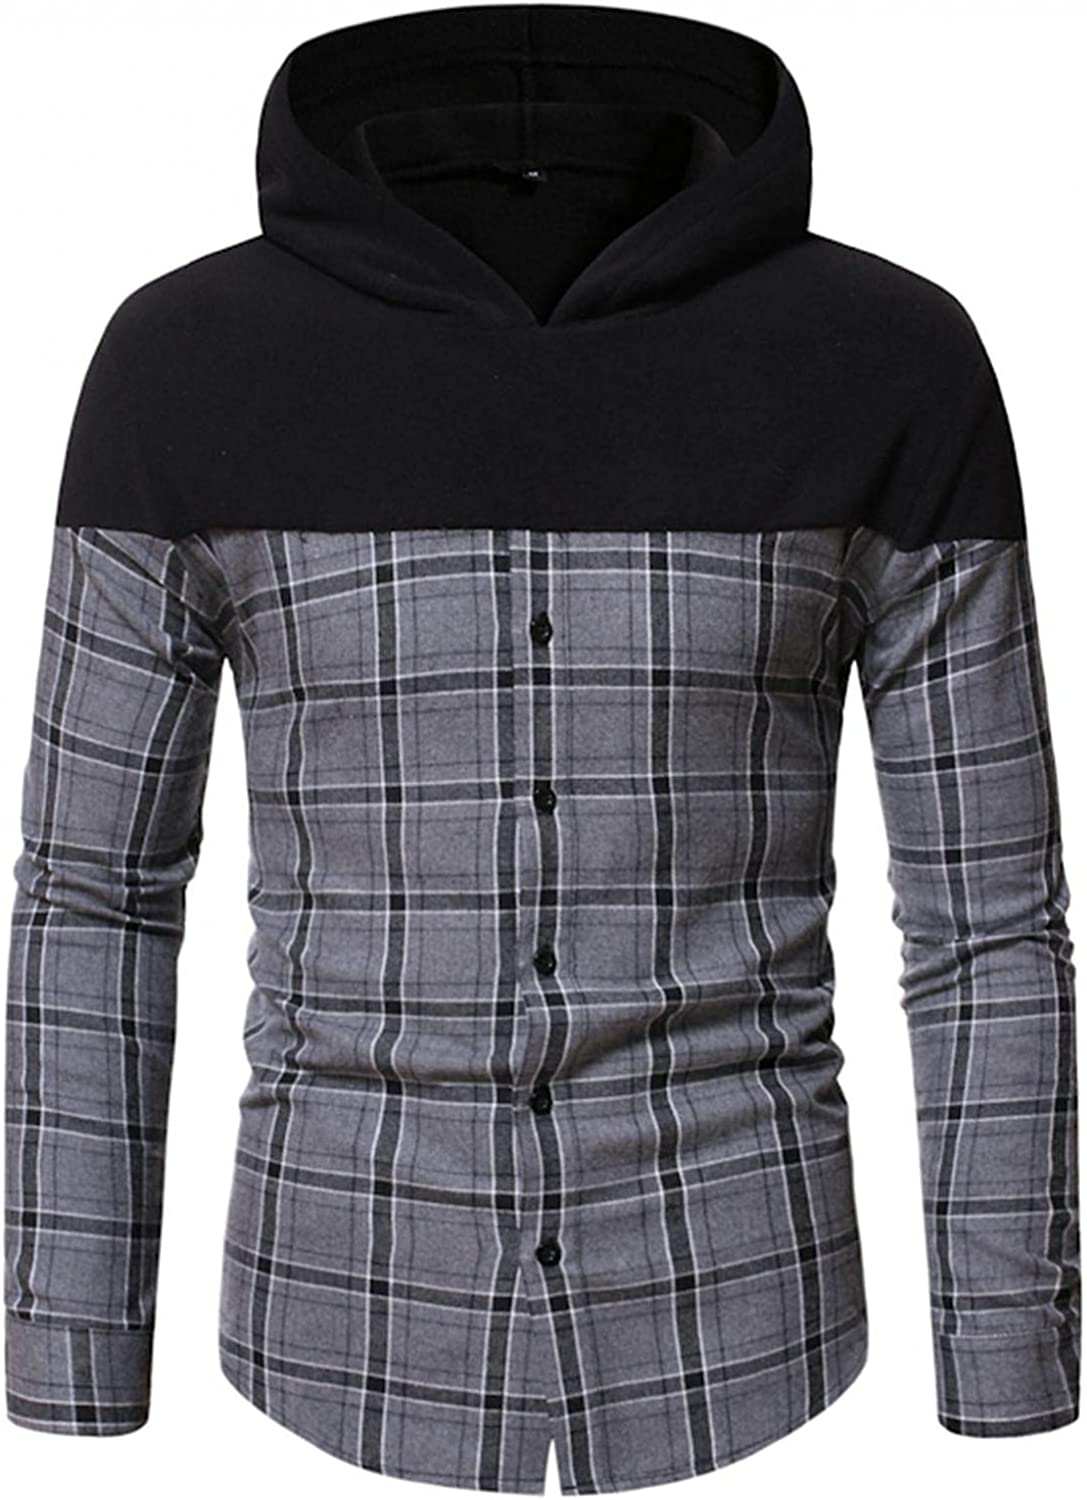 Hoodies for Men,Casual Color Block Plaid Mens Hooded Sweatshirt Long Sleeve Checked Button Shirts Soft Sweater